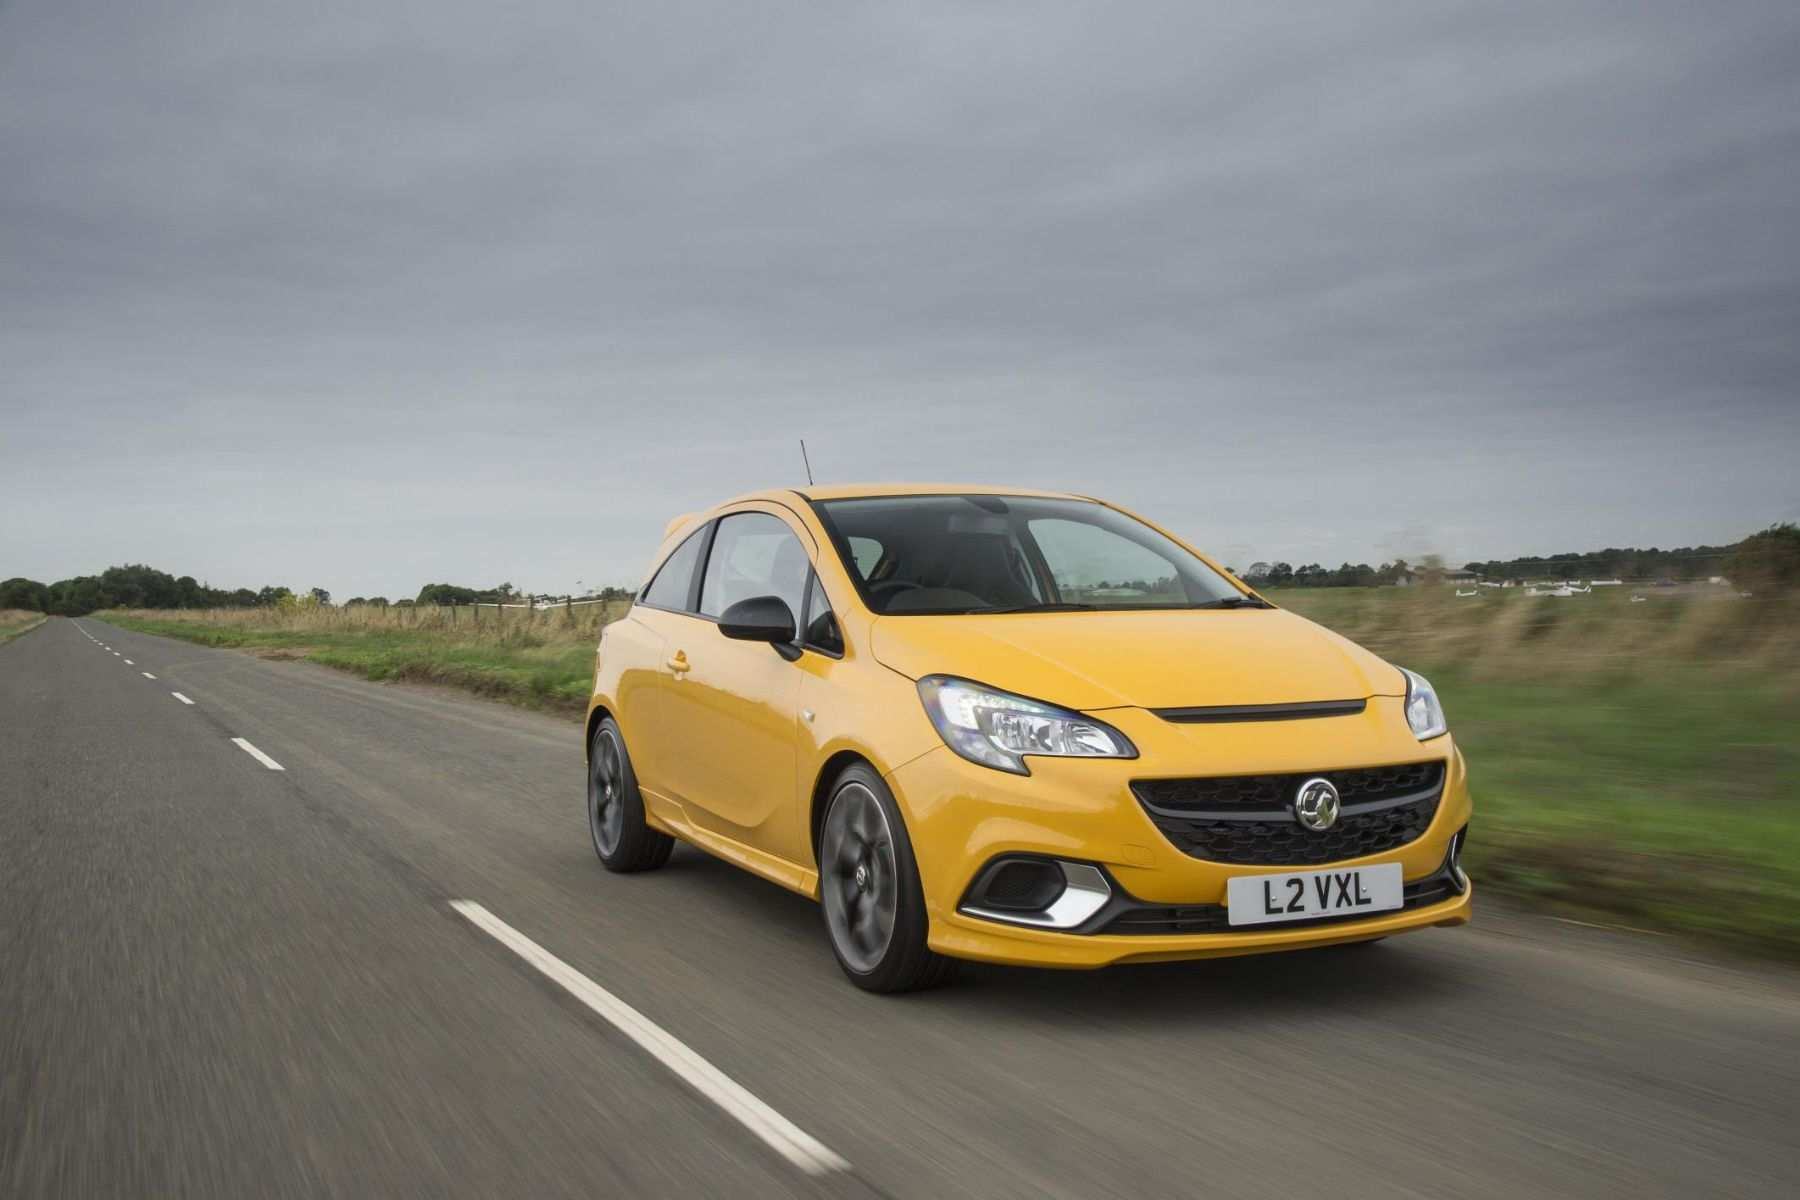 49 All New 2020 Opel Corsa First Drive for 2020 Opel Corsa